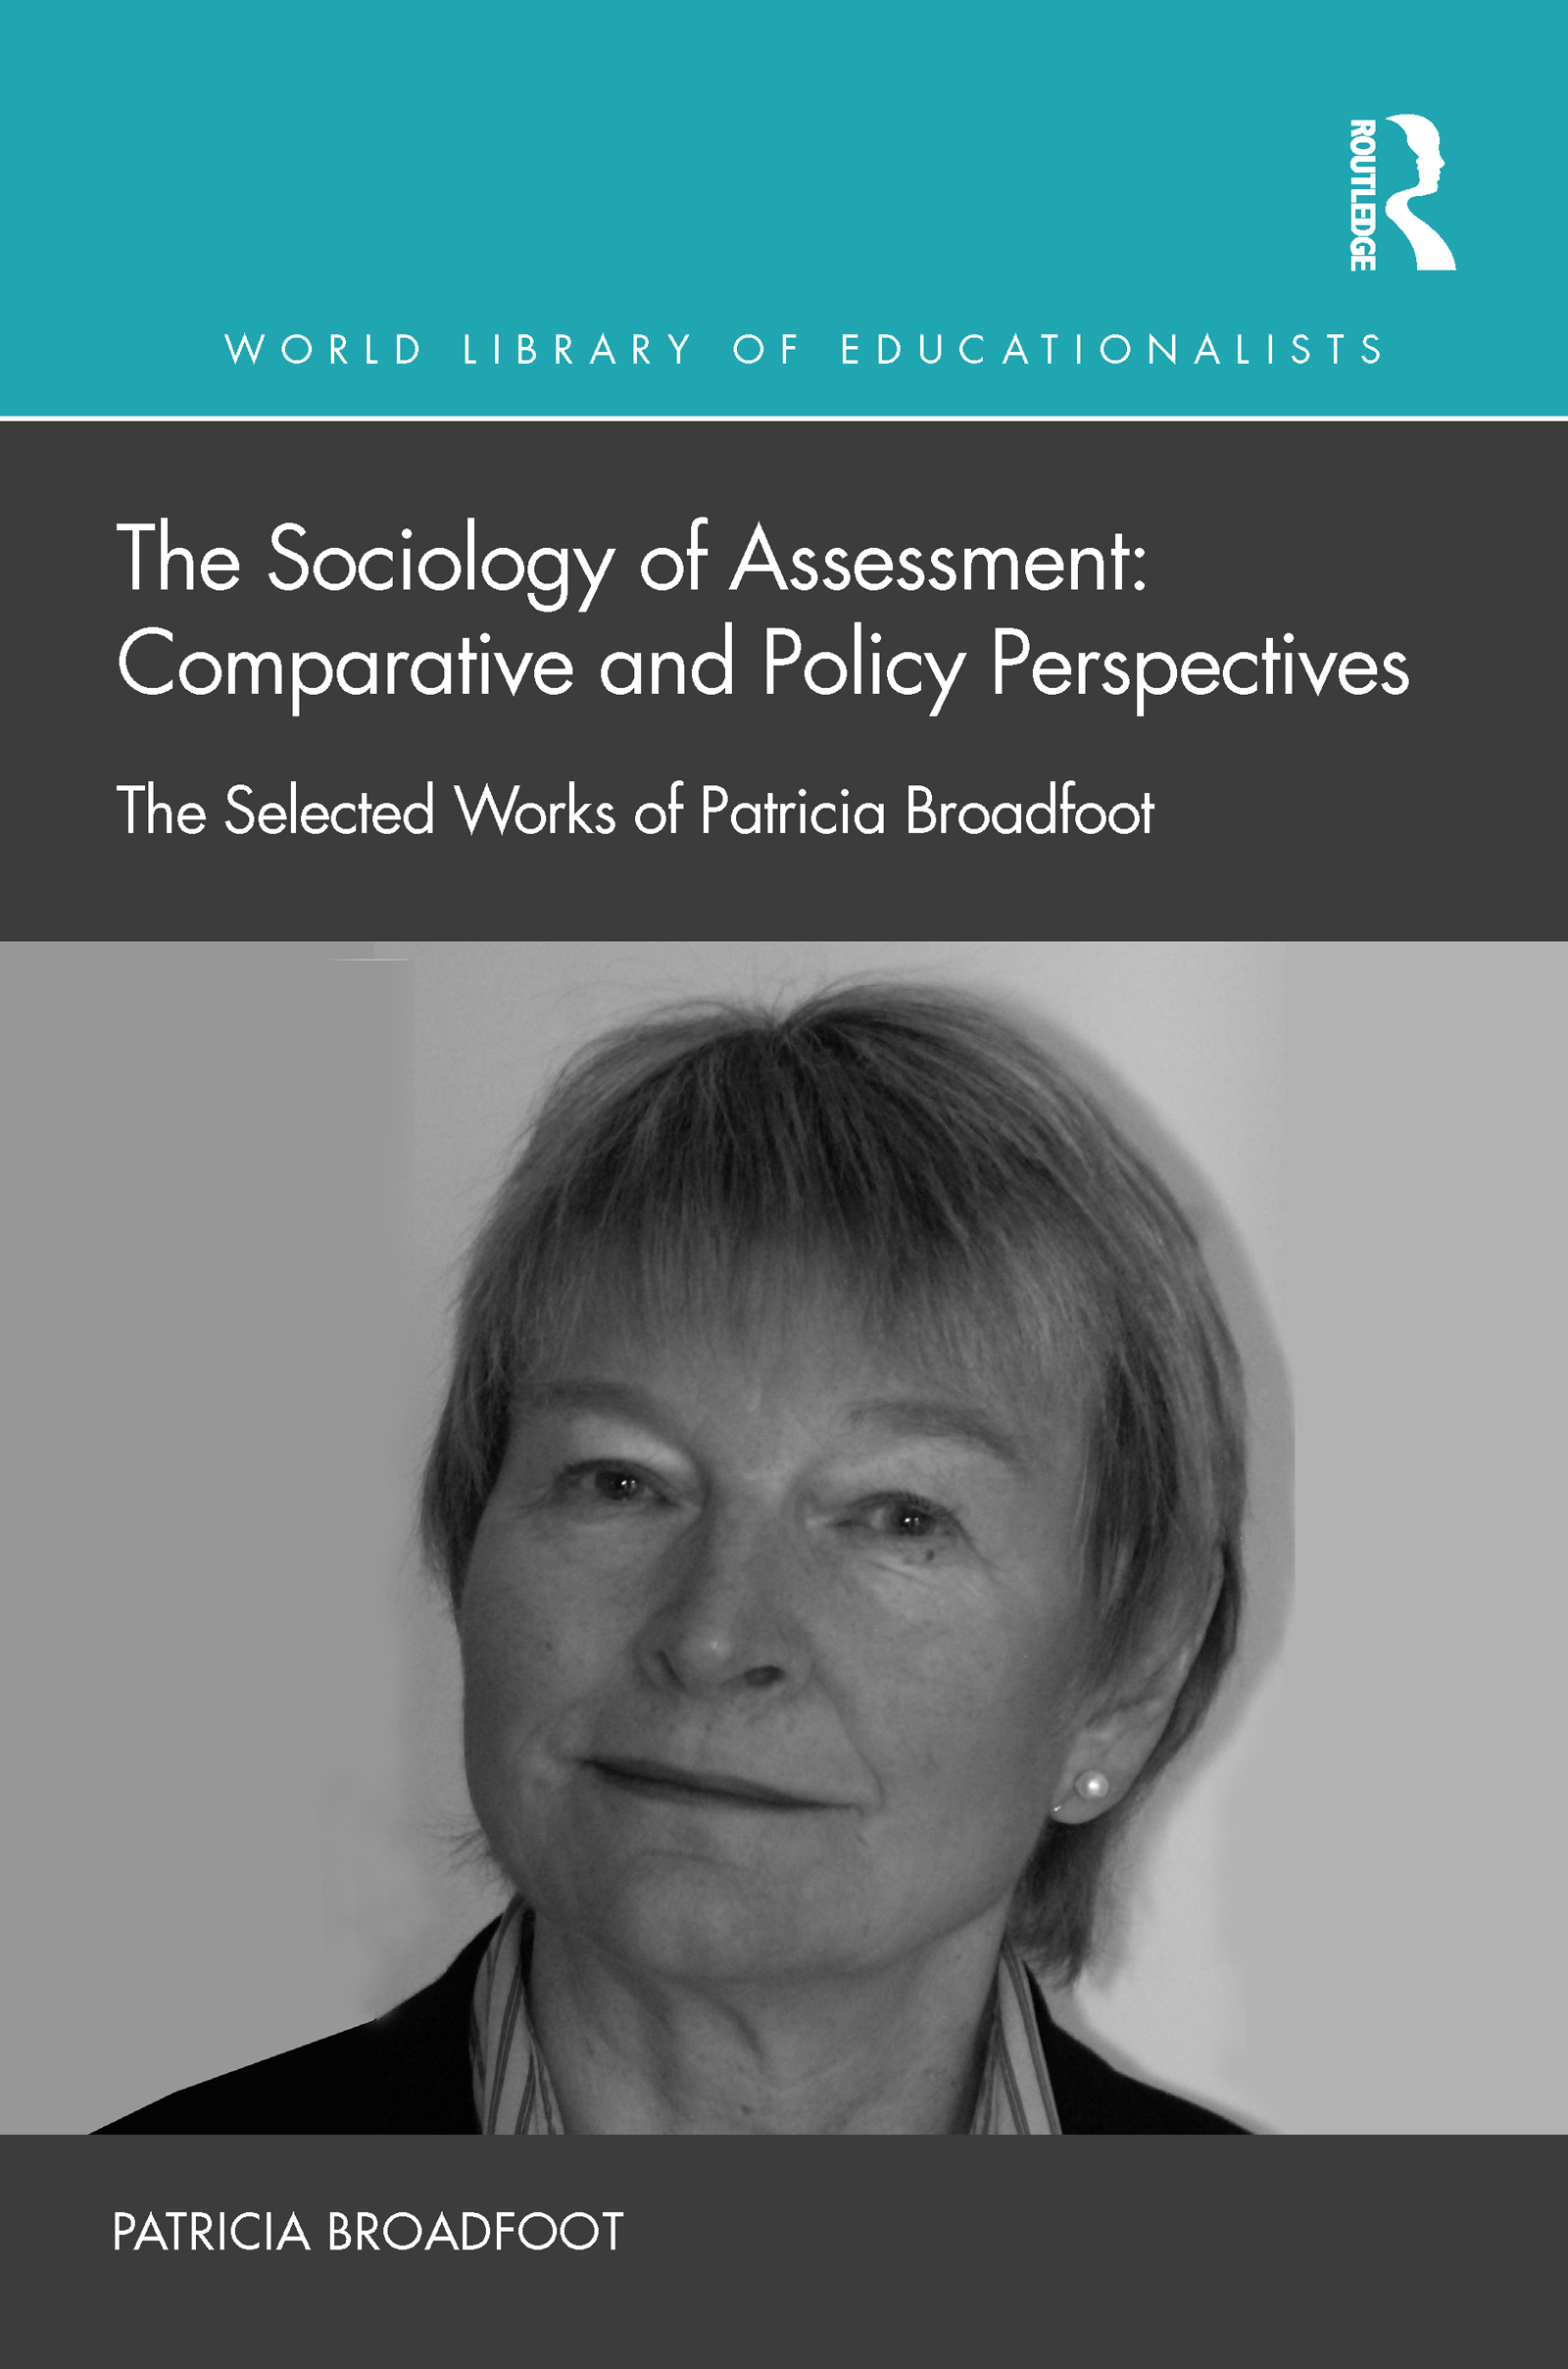 The Sociology of Assessment: Comparative and Policy Perspectives